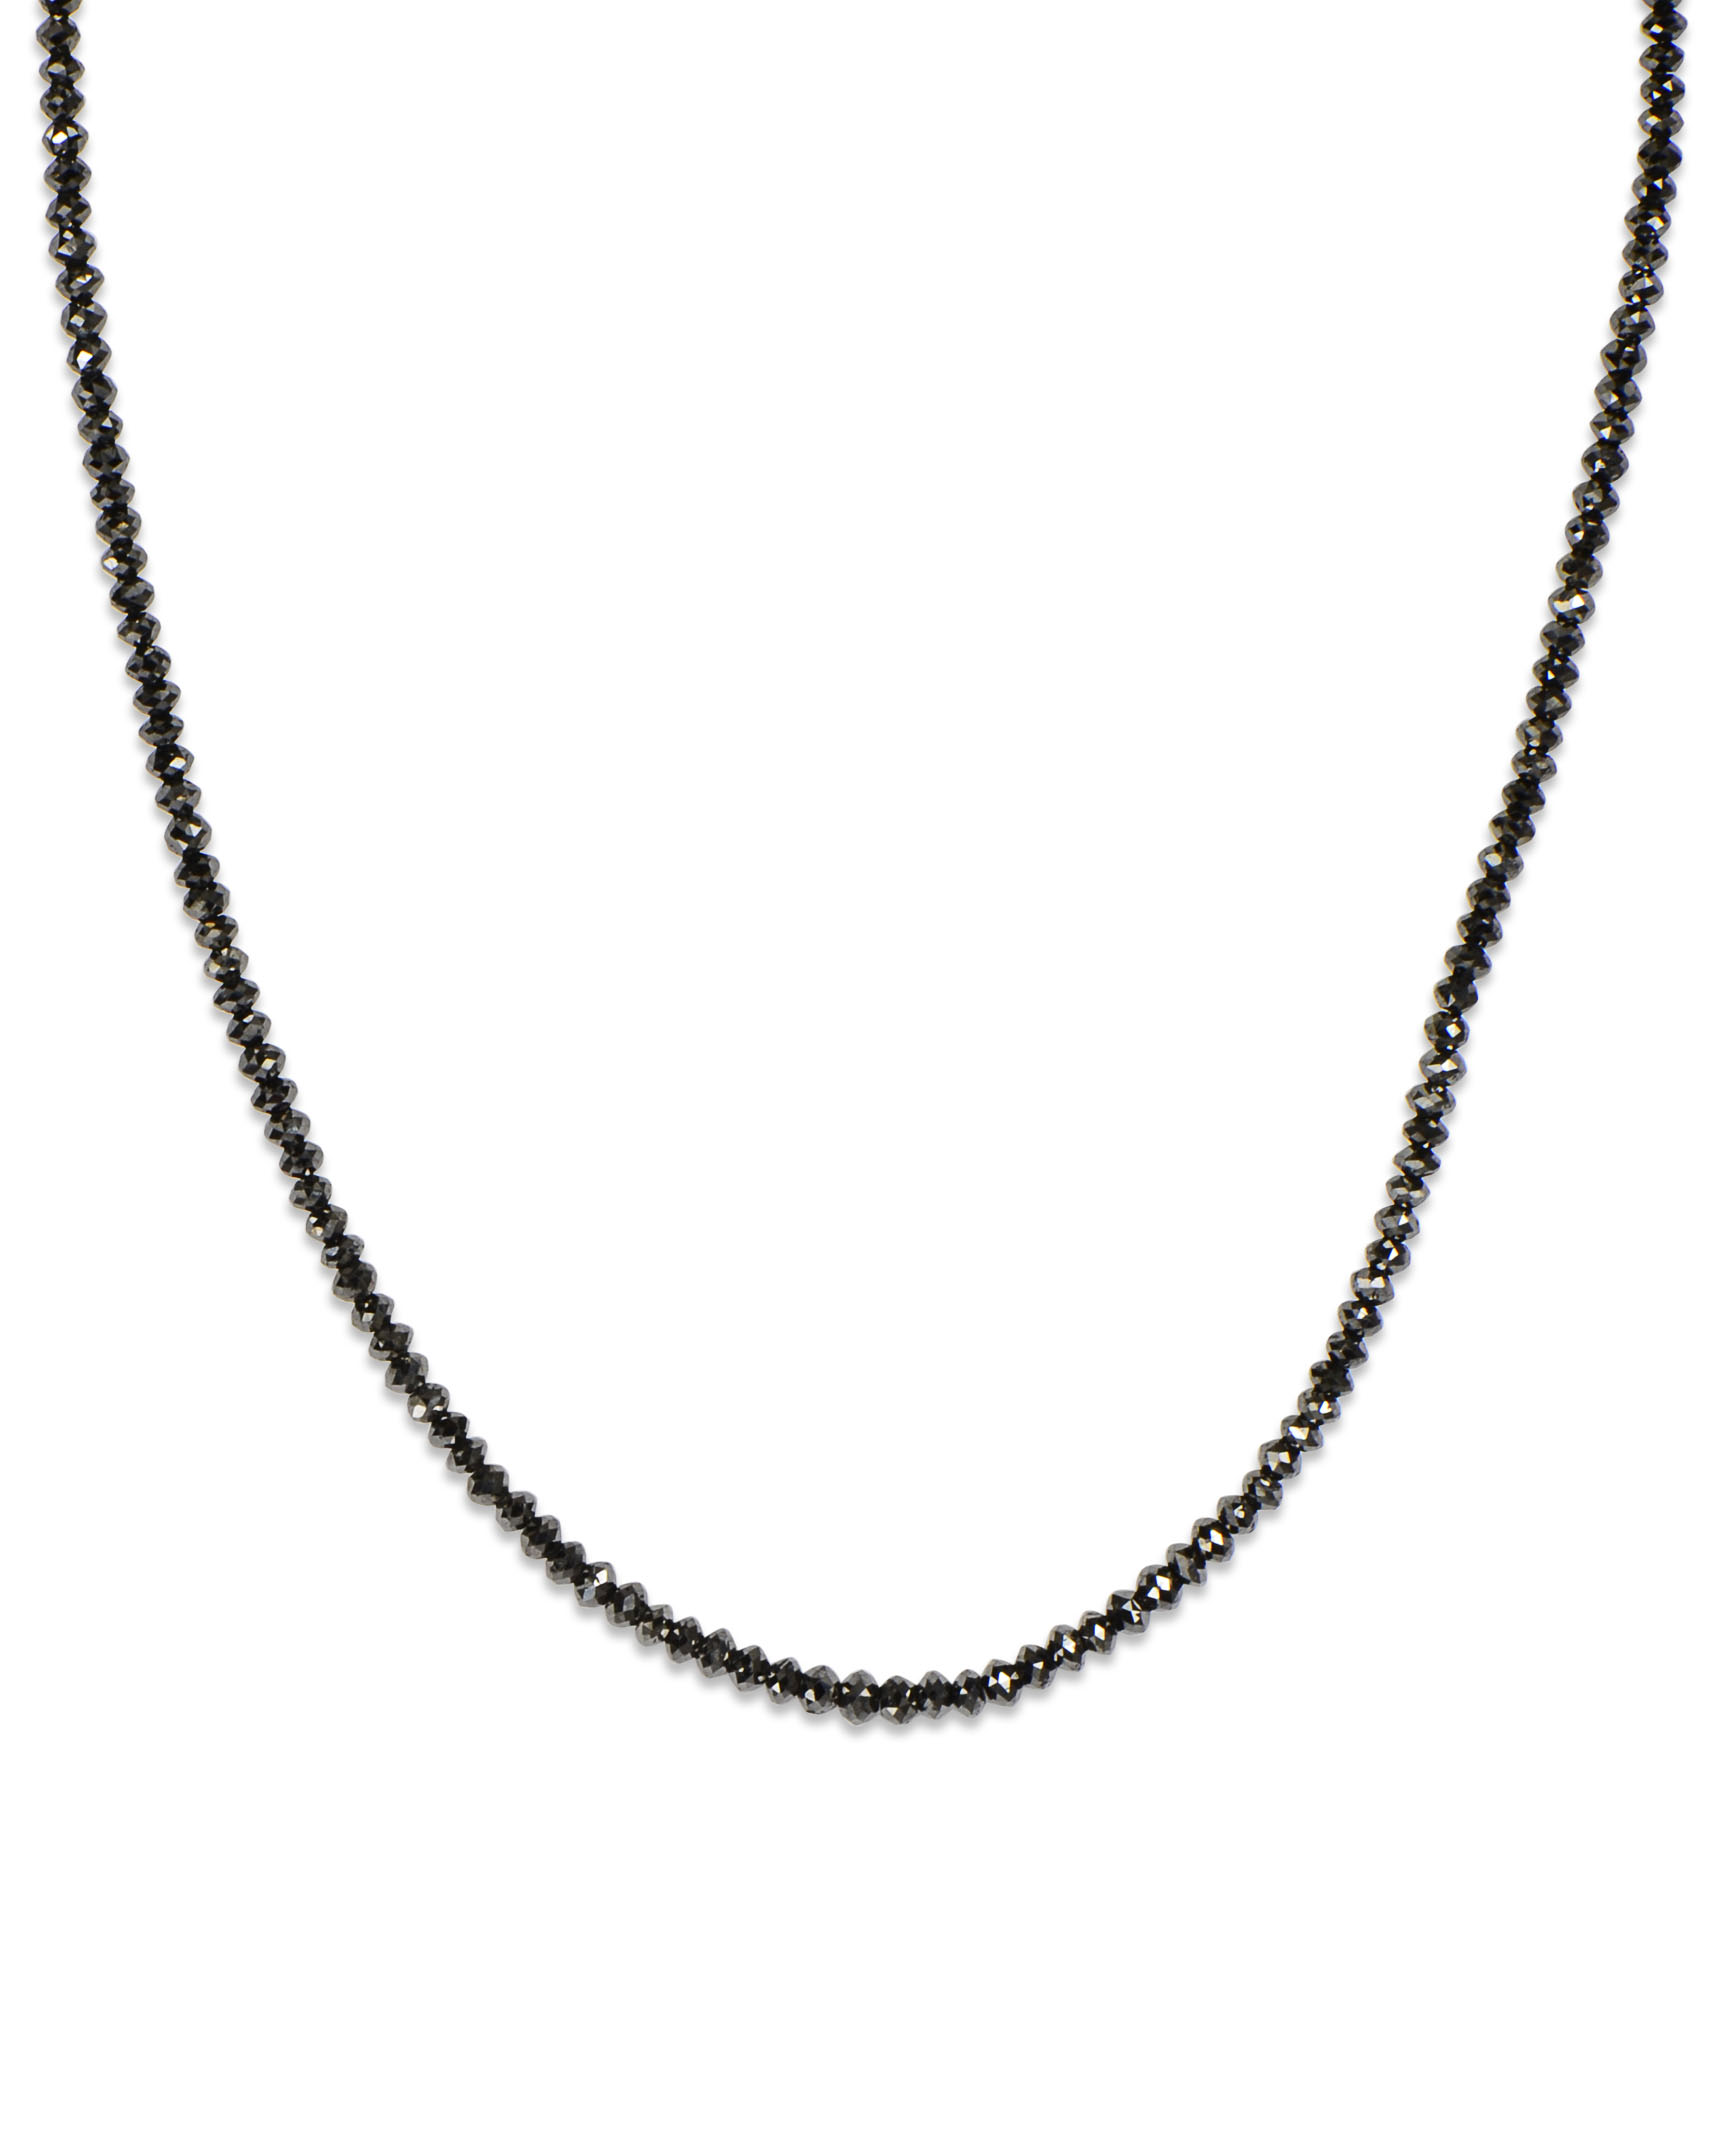 kay hover diamond zm necklace ct diamonds mv black white gold zoom pendant to kaystore tw en